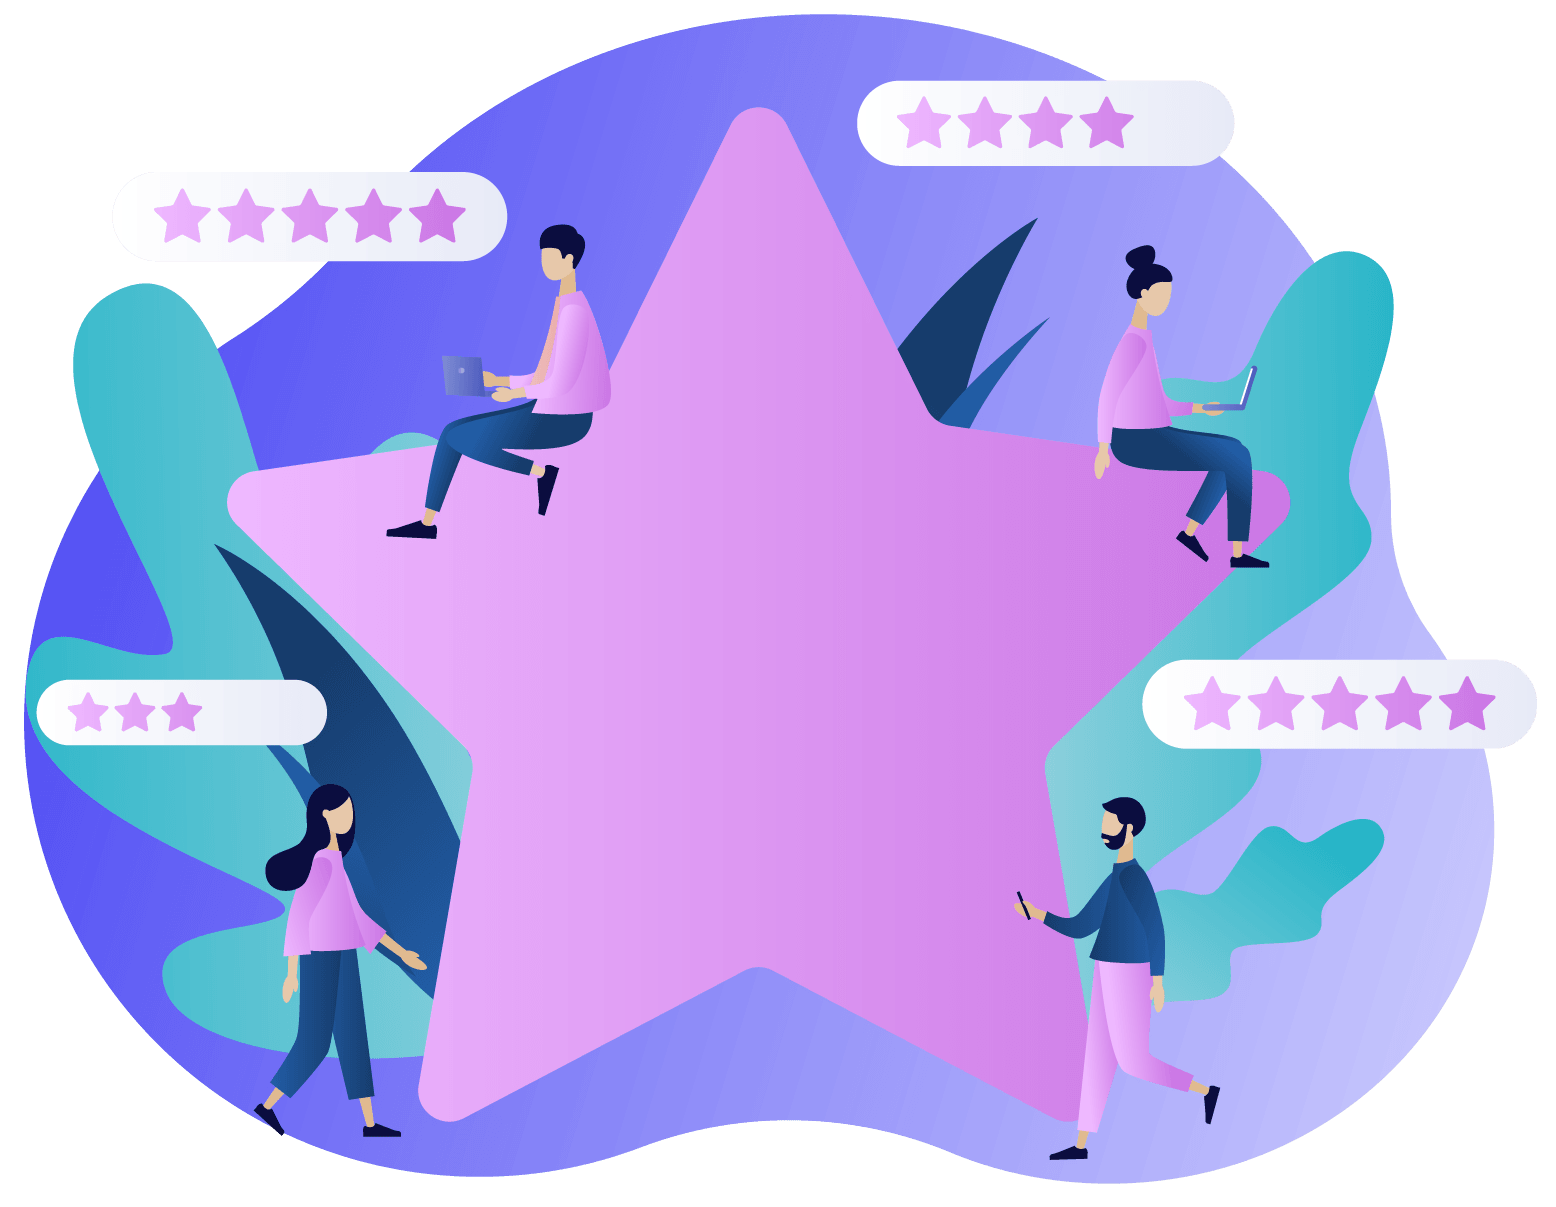 Reviews and Company graphic